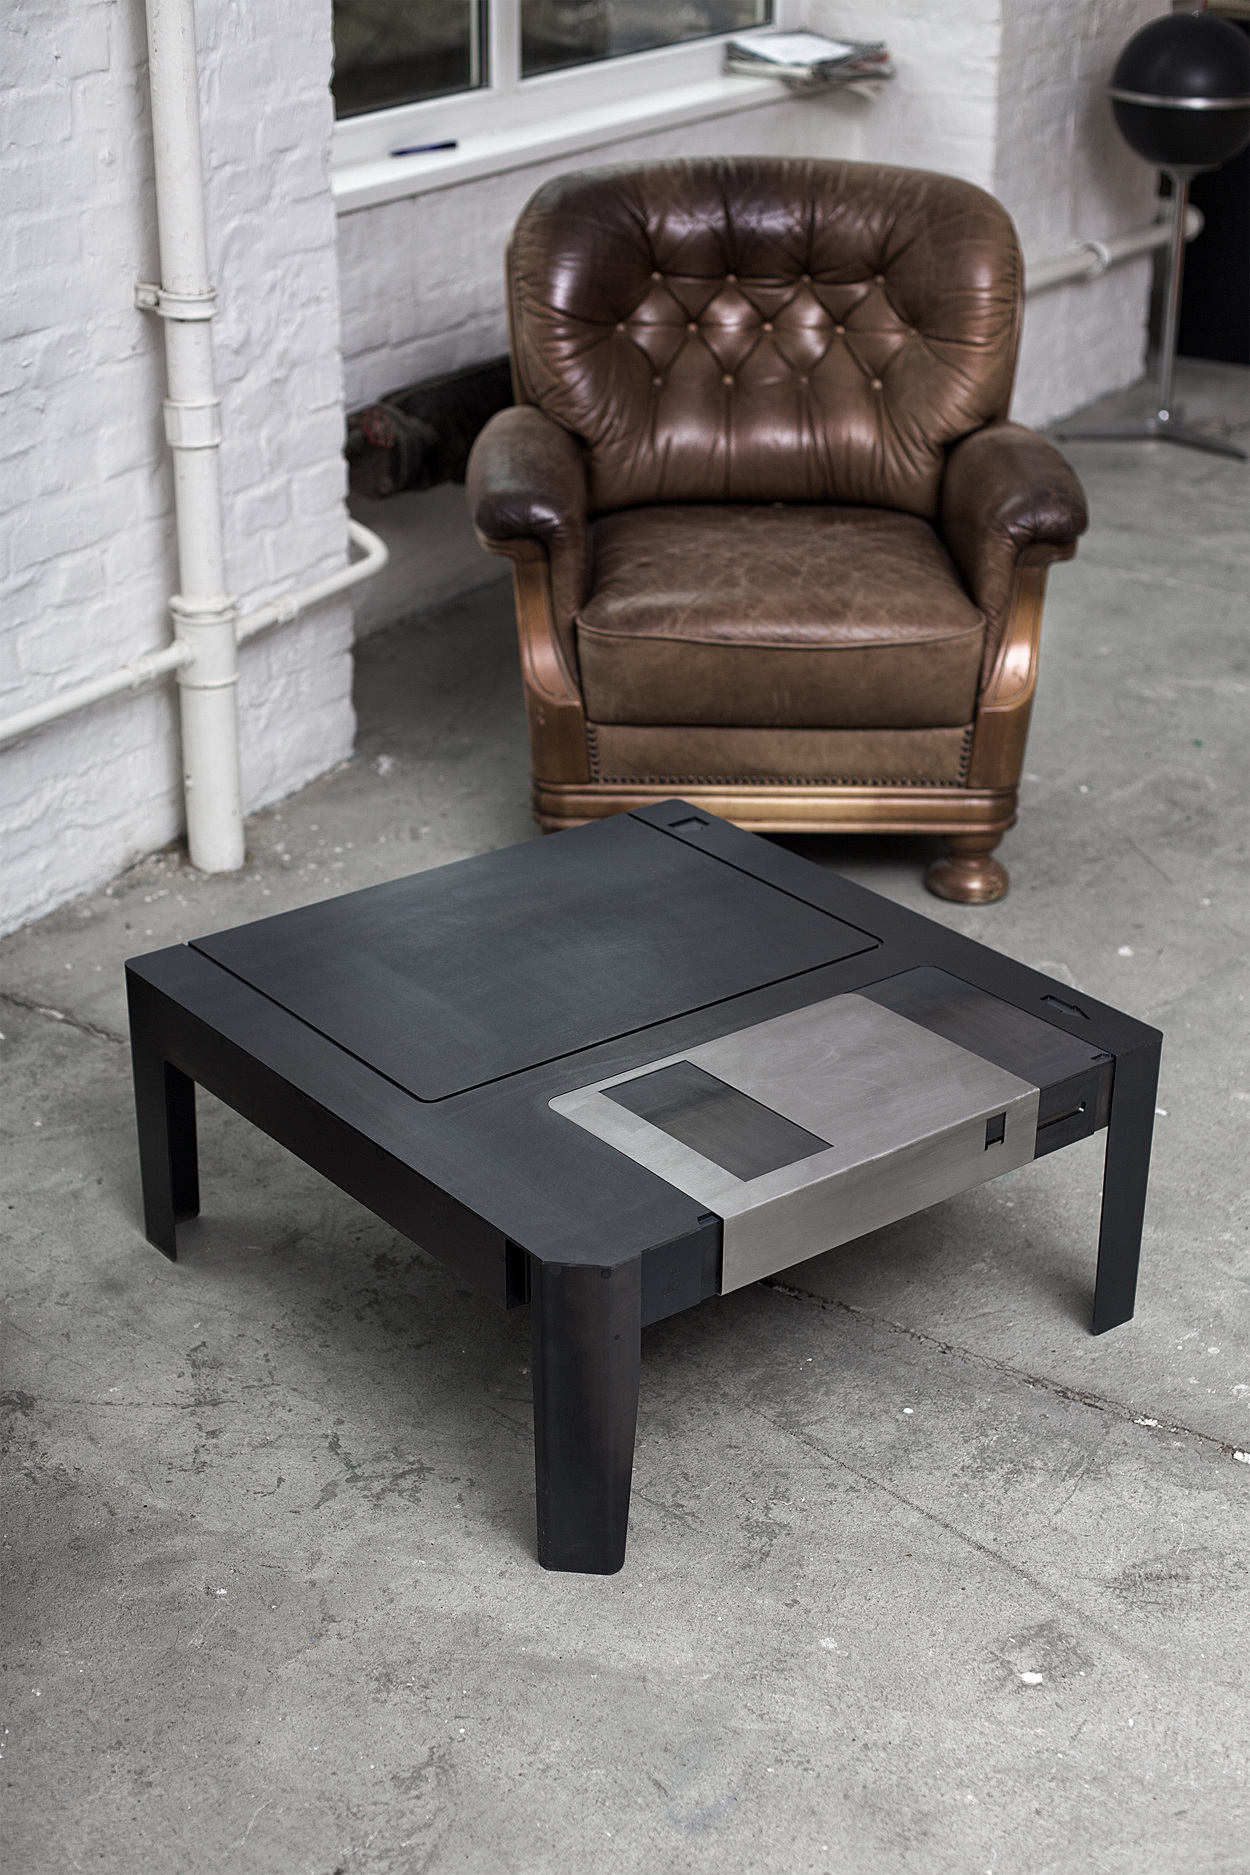 FLOPPYTABLE  COFFEE TABLE  wwwneulantvanexelde